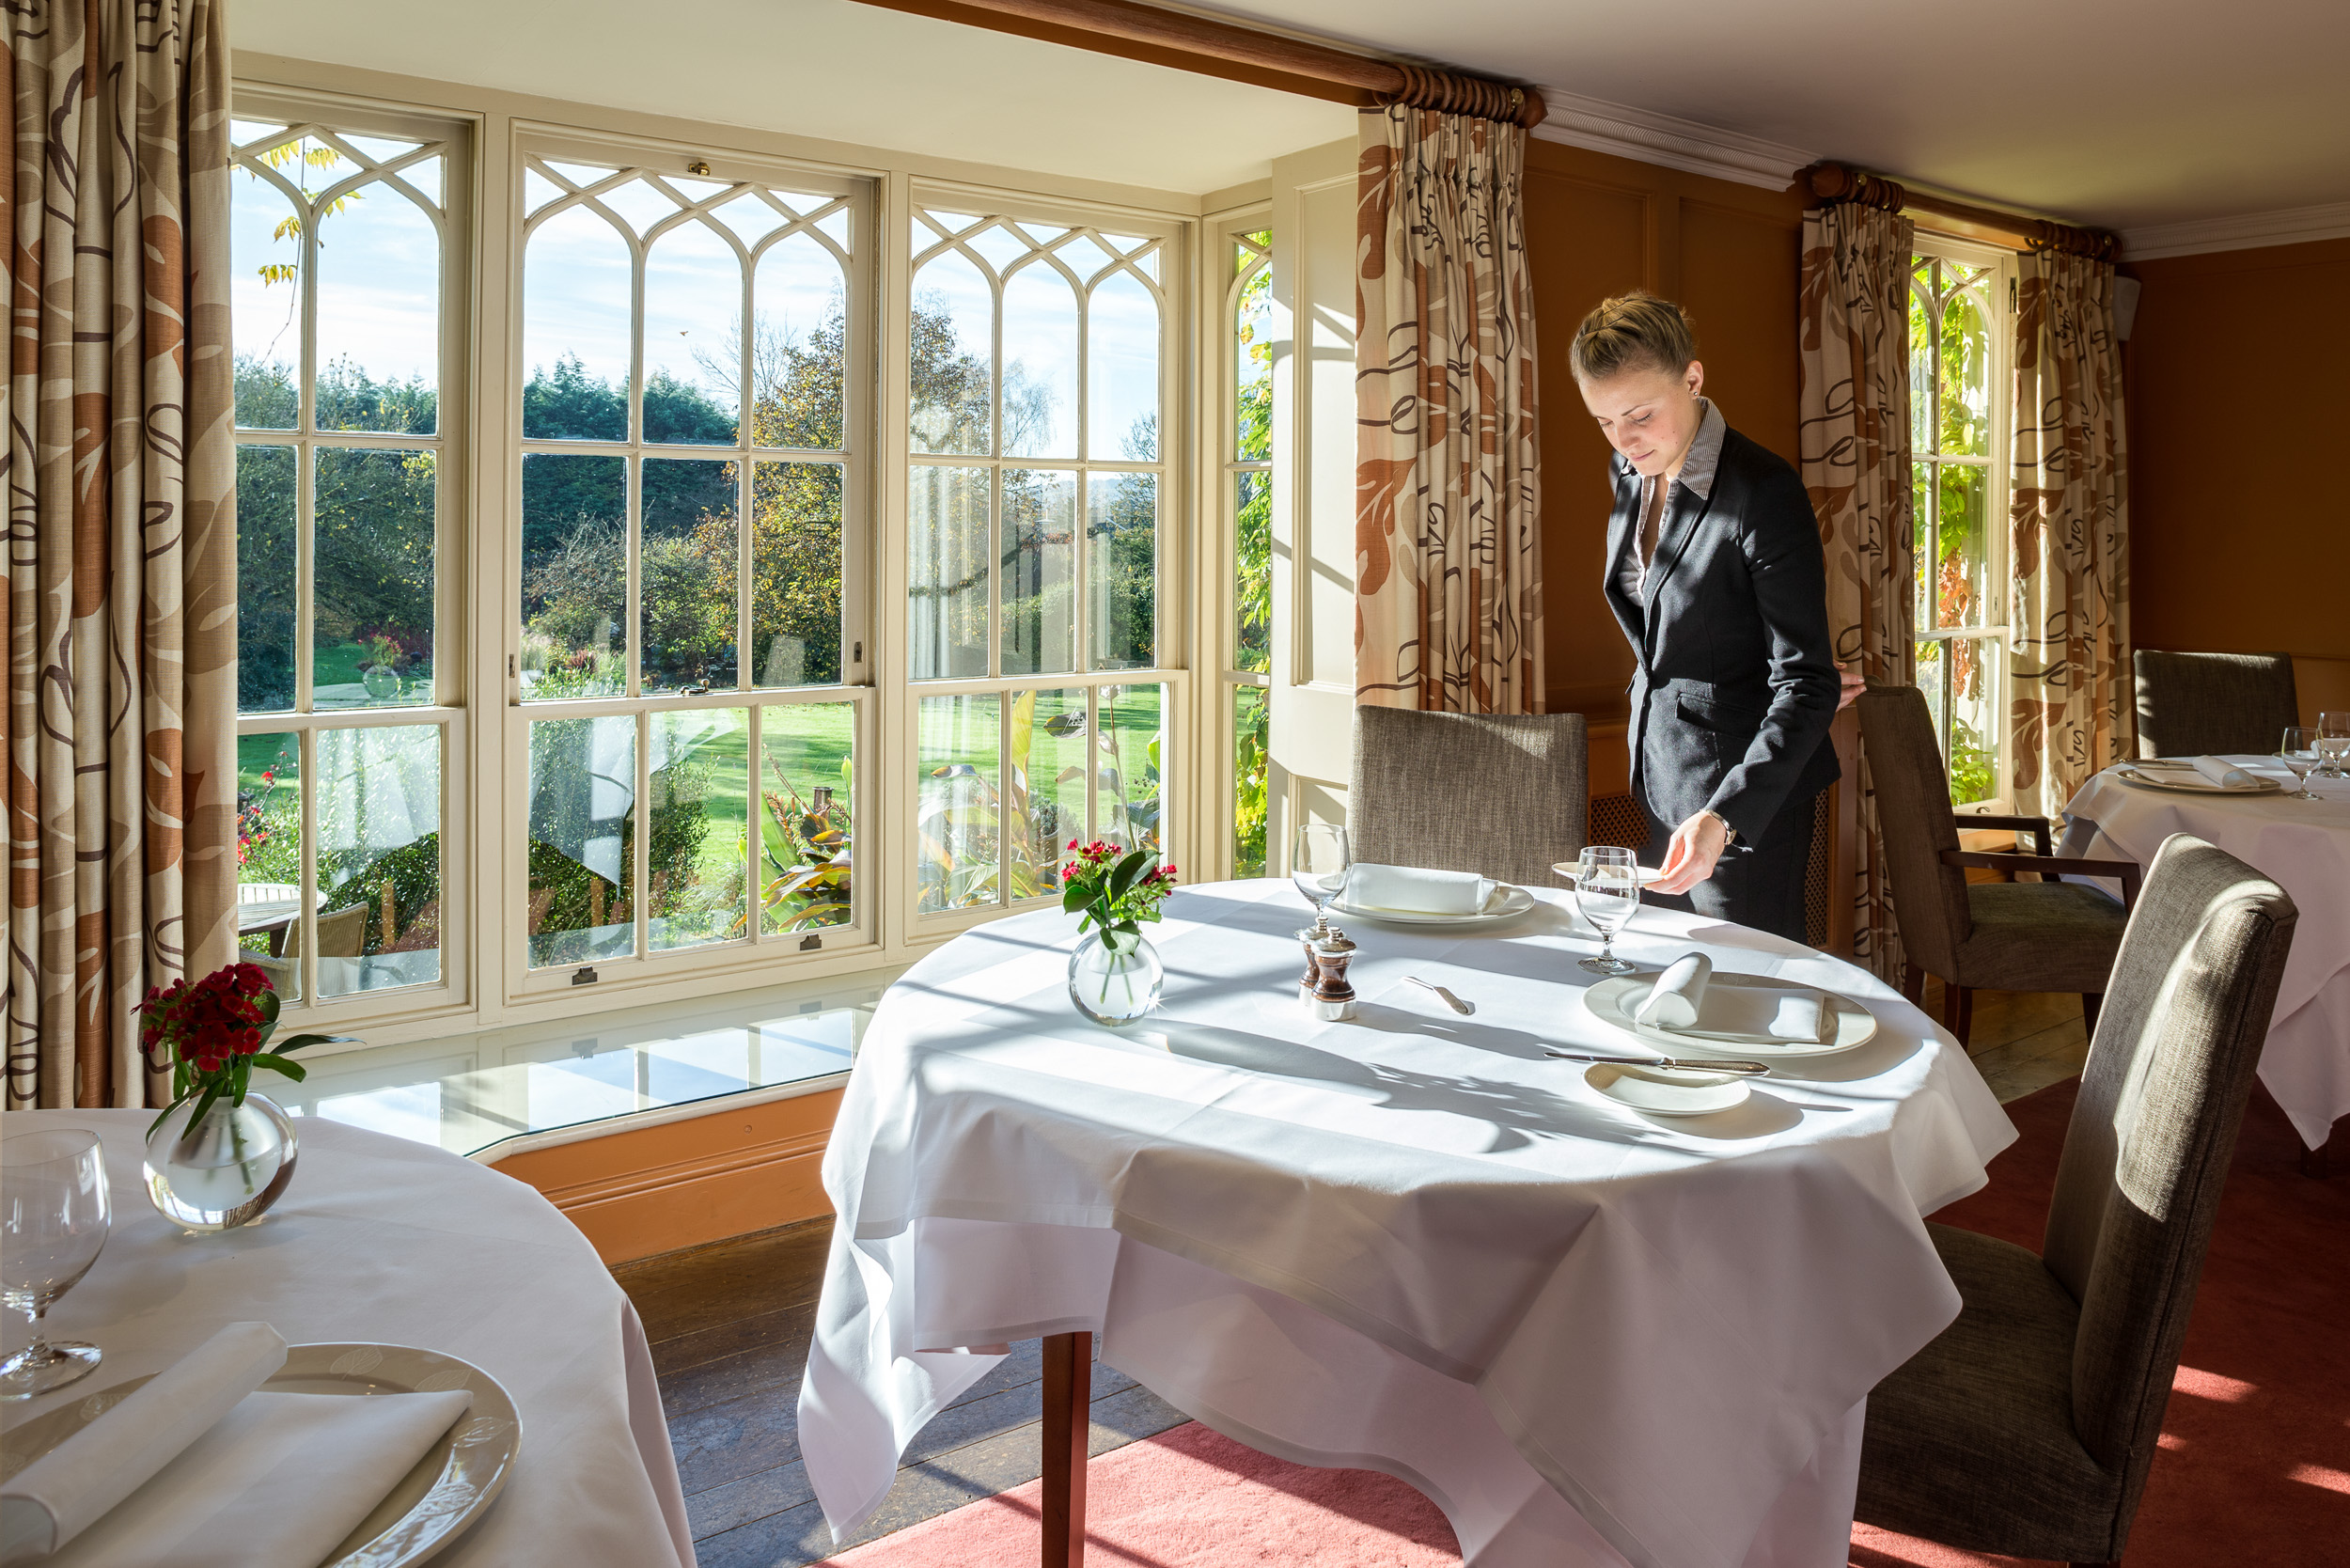 Hotel Photography at The Gidleigh Hotel, Devon